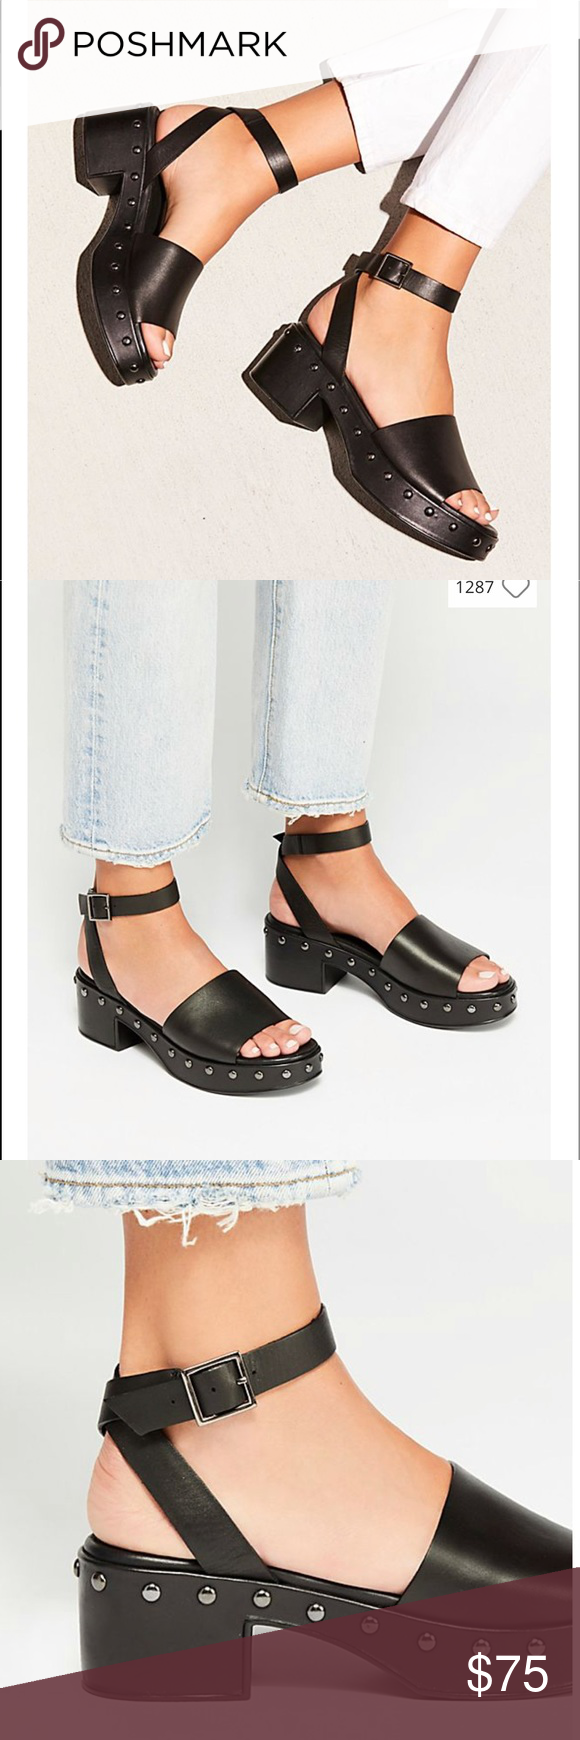 e5ff614c8551 NWT Free People Stand By Me Platform Sandal Platform clog-style sandal  featuring studded details and a wraparound ankle strap. With original box  Adjustable ...